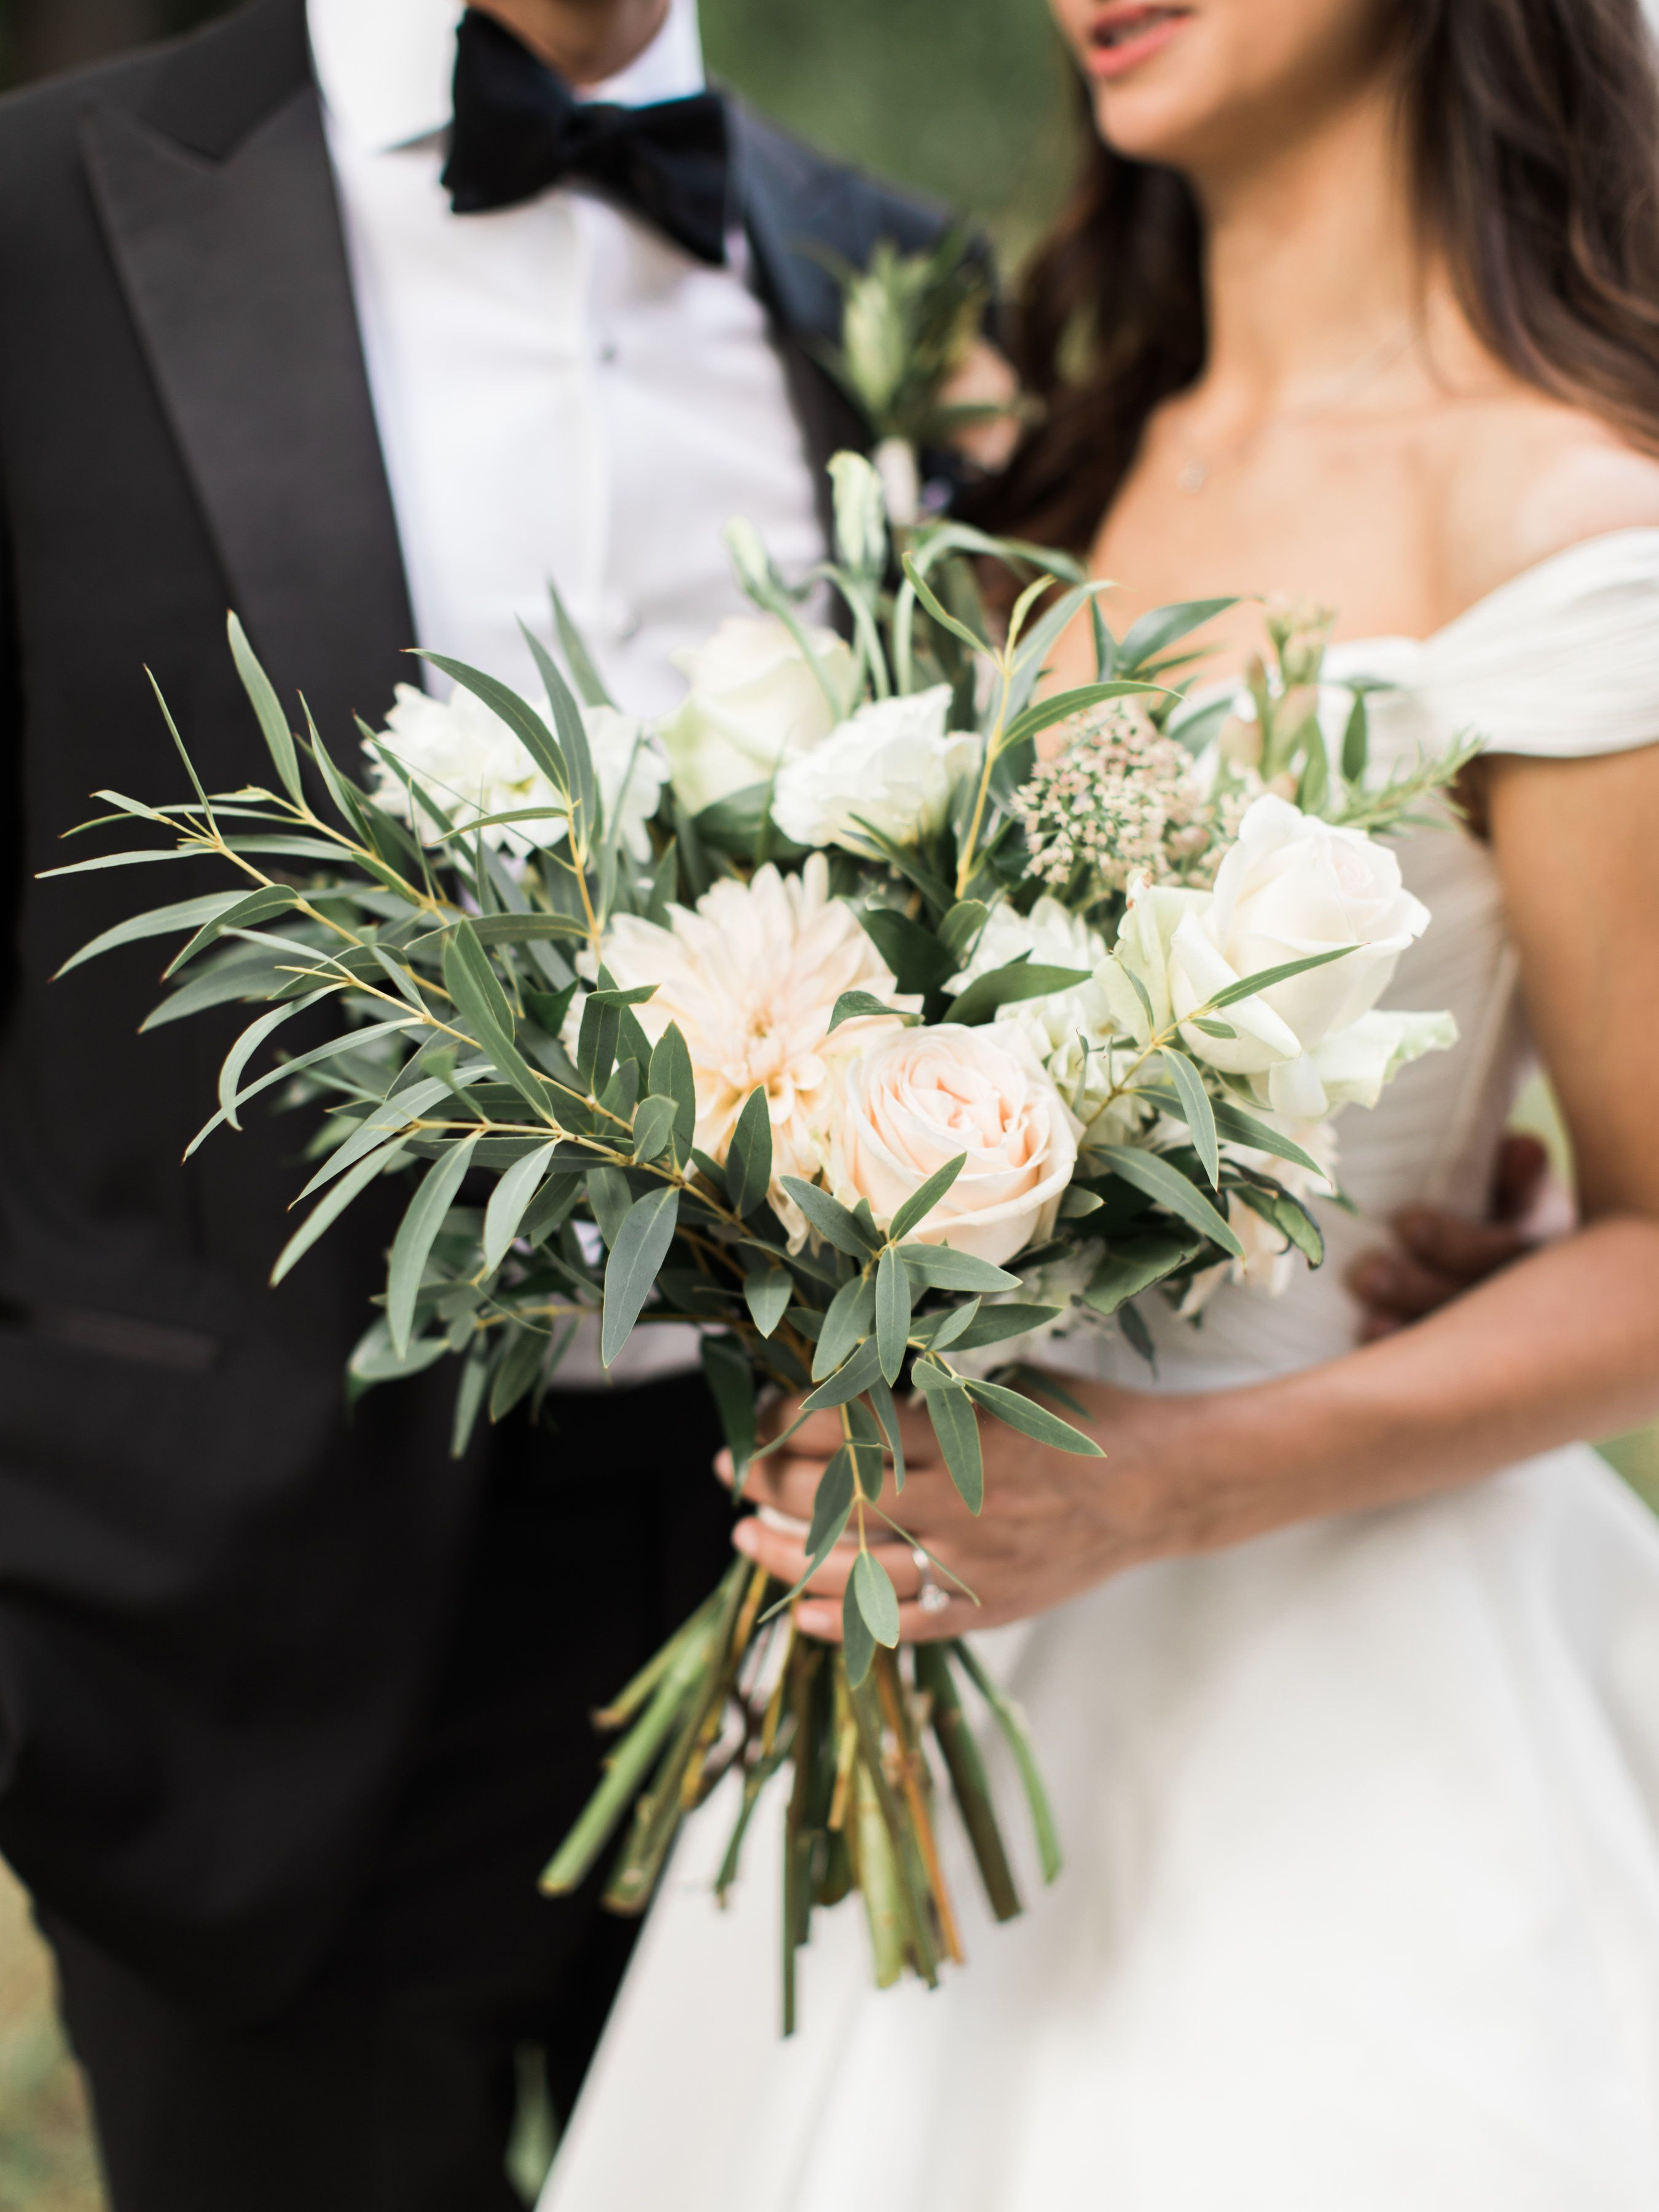 wedding & event flowers brooklyn, ny in 2019 | stems